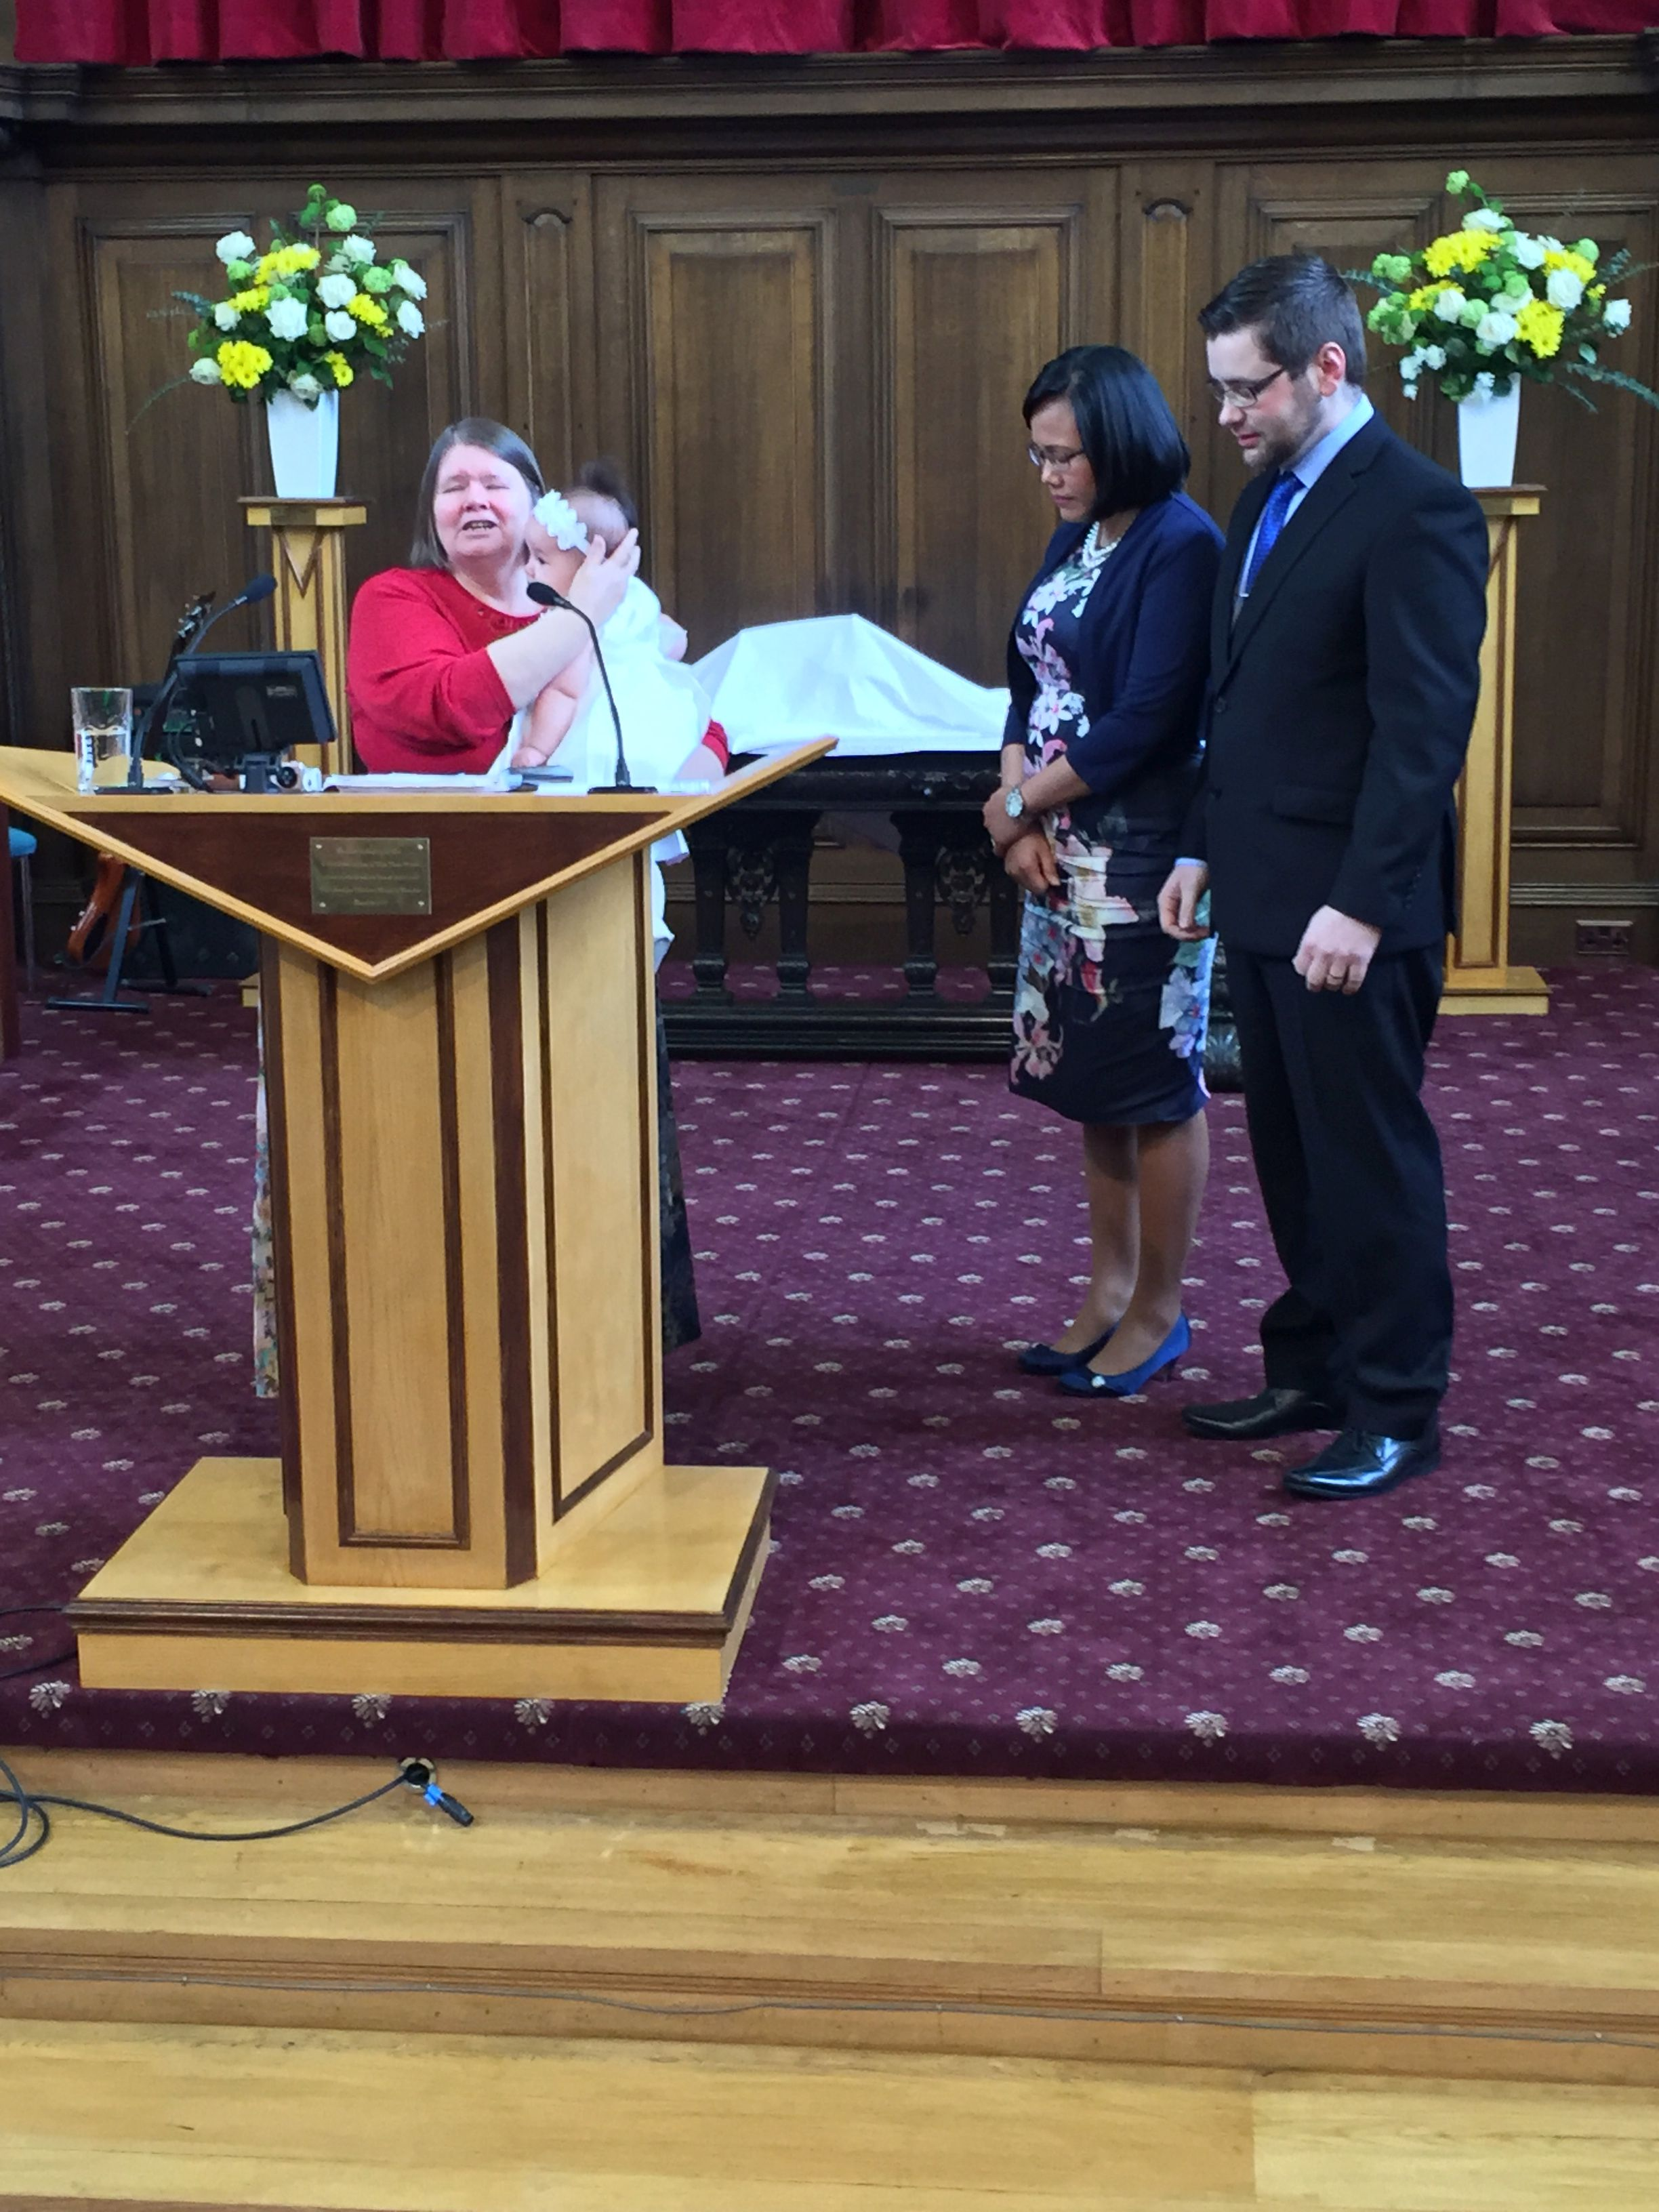 Alison Speirs praying with Sophia whith mum and dad standing beside them